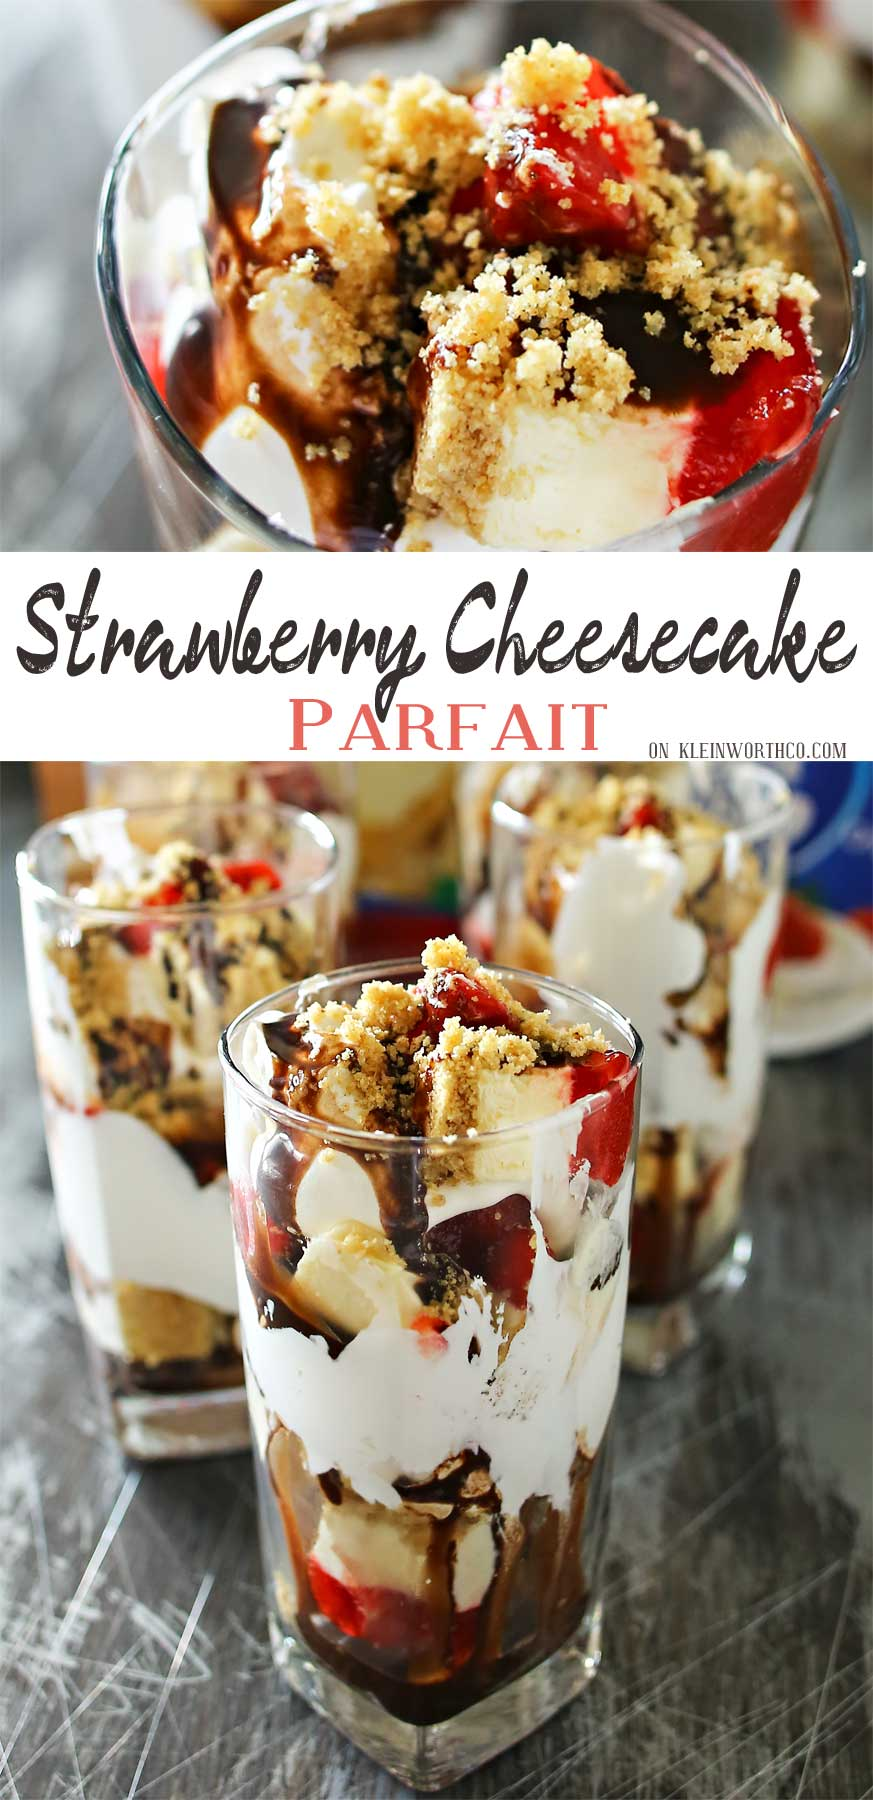 Strawberry Cheesecake Parfait is made with chunks of strawberry topped cheesecake, whipped topping, chocolate syrup & graham cracker sprinkles. A perfect easy treat to serve for Mother's Day.